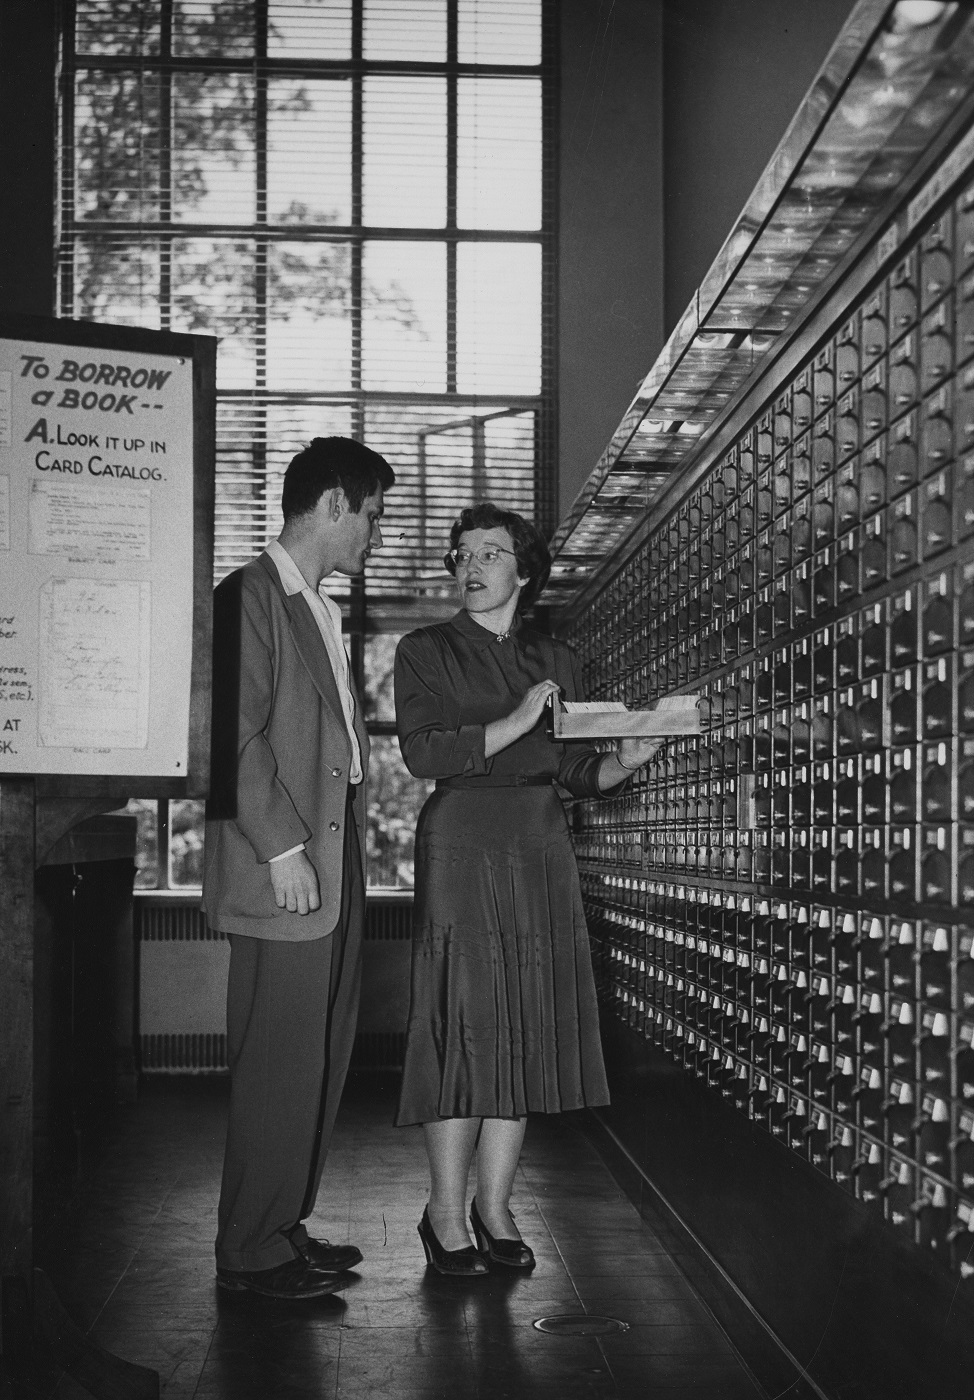 Librarian helps student navigate card catalog, 1940s.